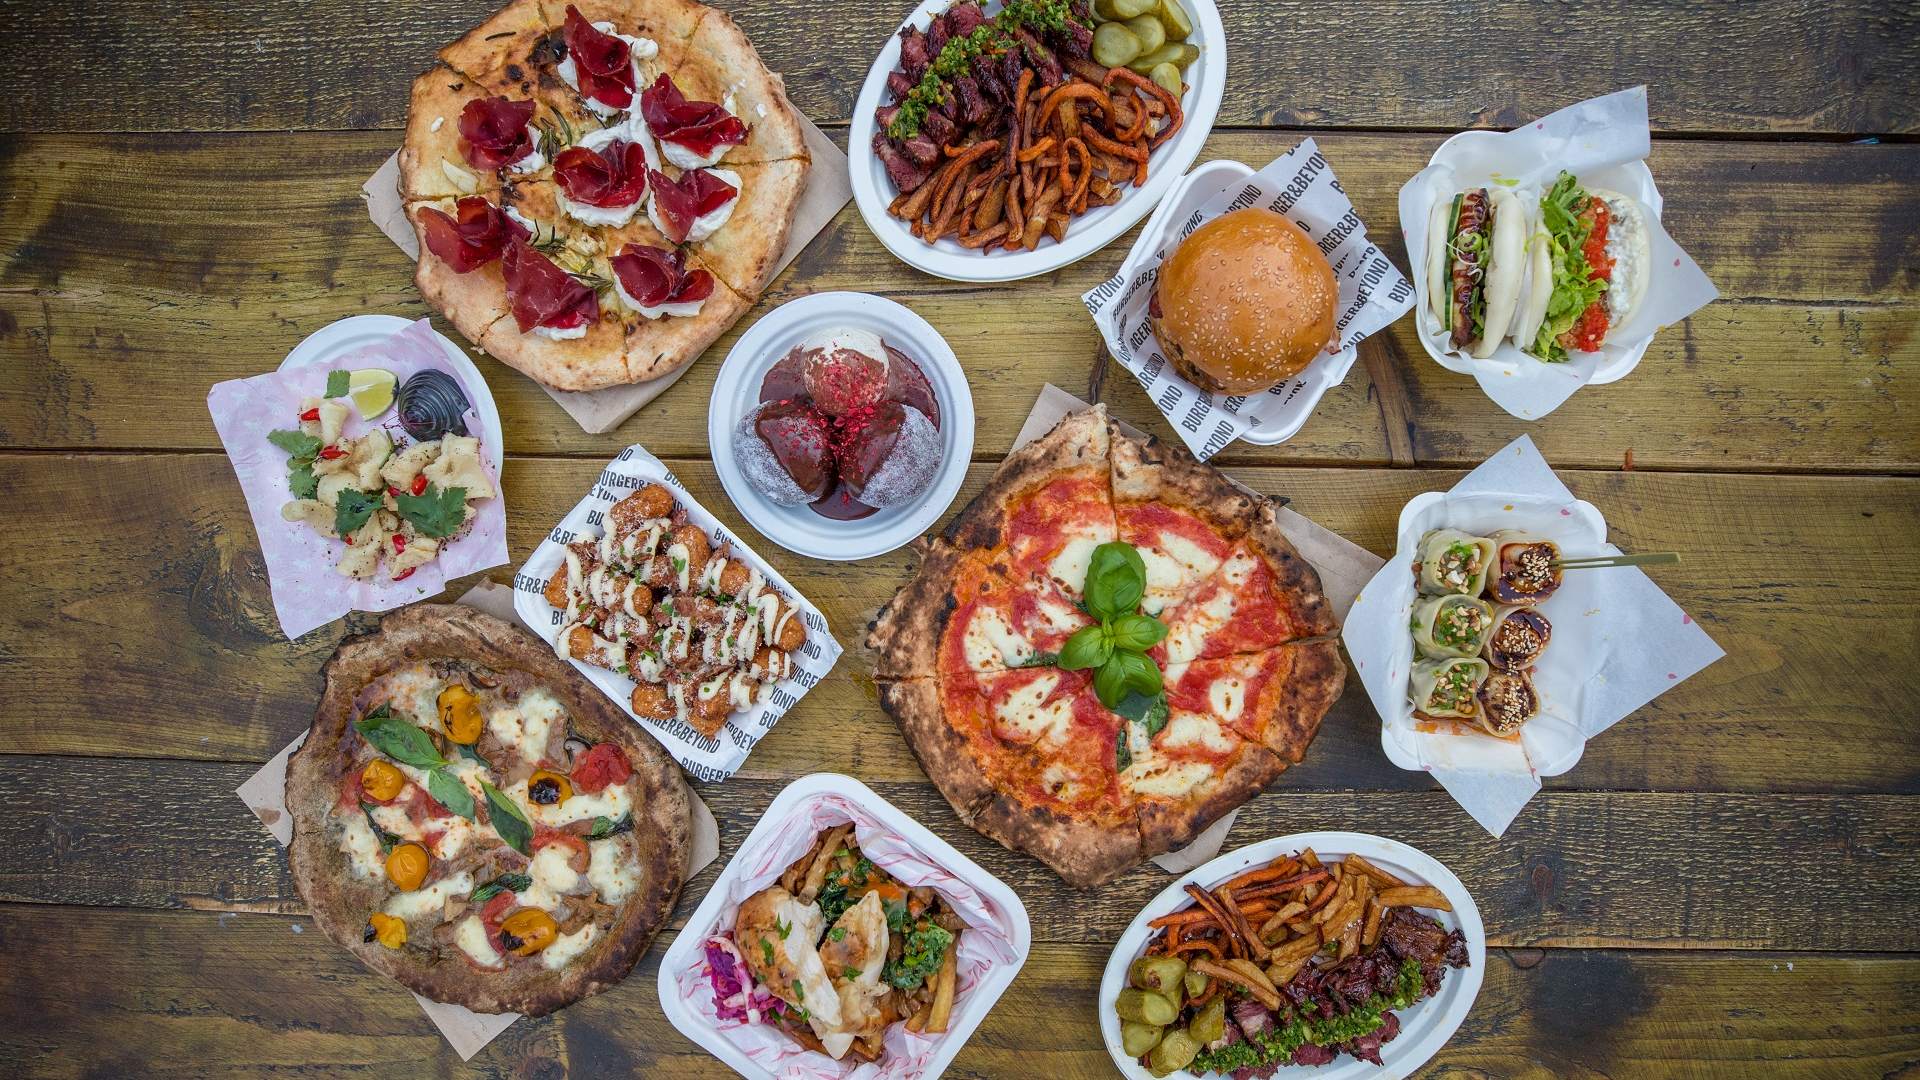 An array of street food staples on a wooden table including pizza and burgers.